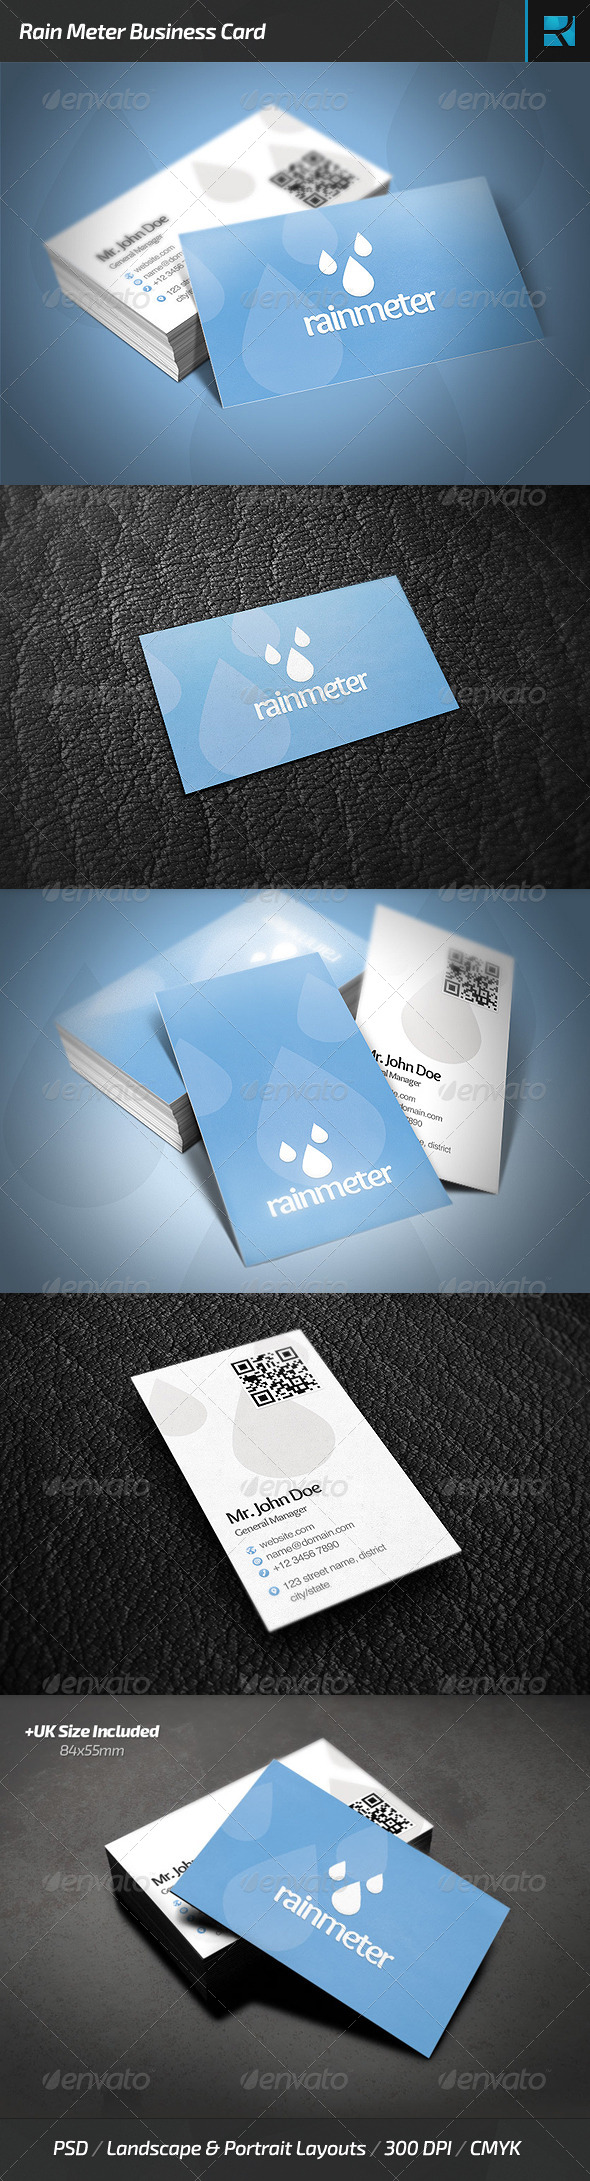 Rain Meter Business Card - Industry Specific Business Cards